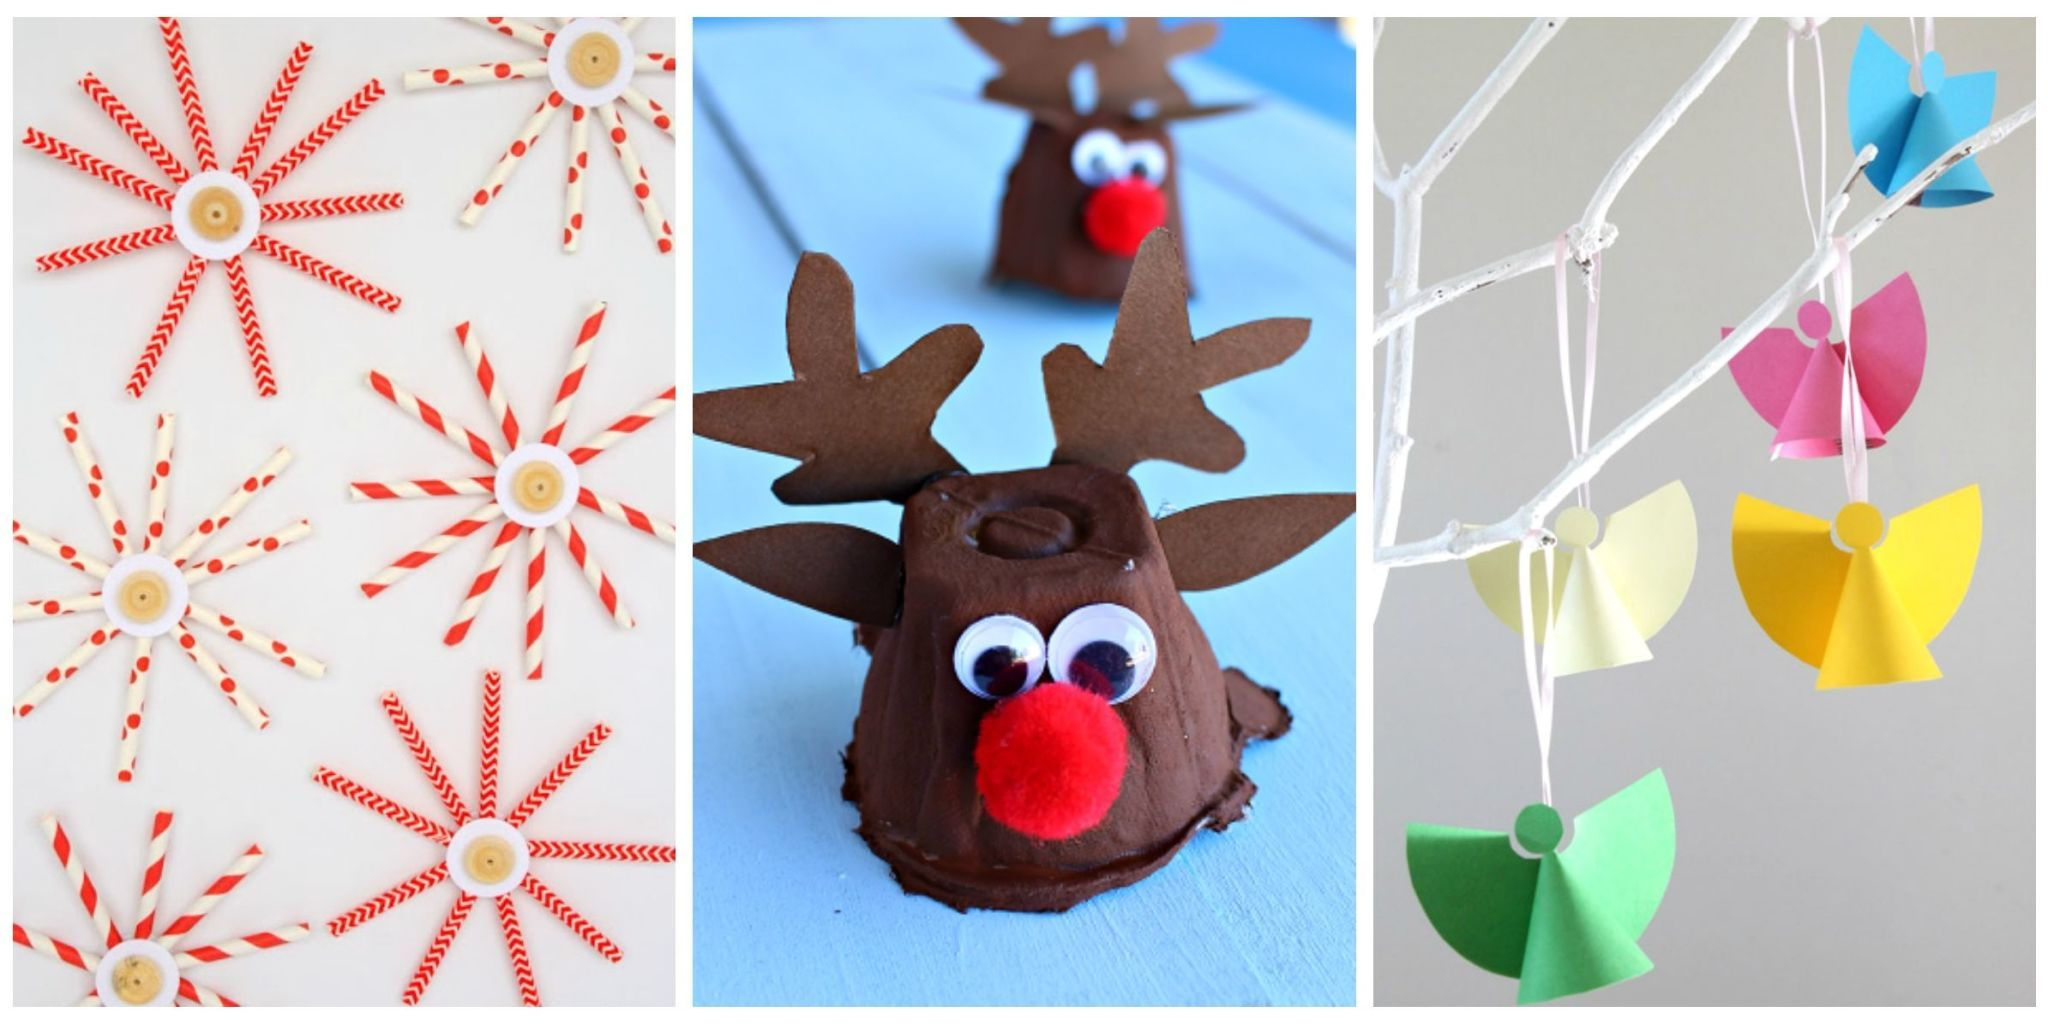 These Festive Crafts And Games Will Make This Holiday Season Your Familyu0027s  Most Entertaining Yet.